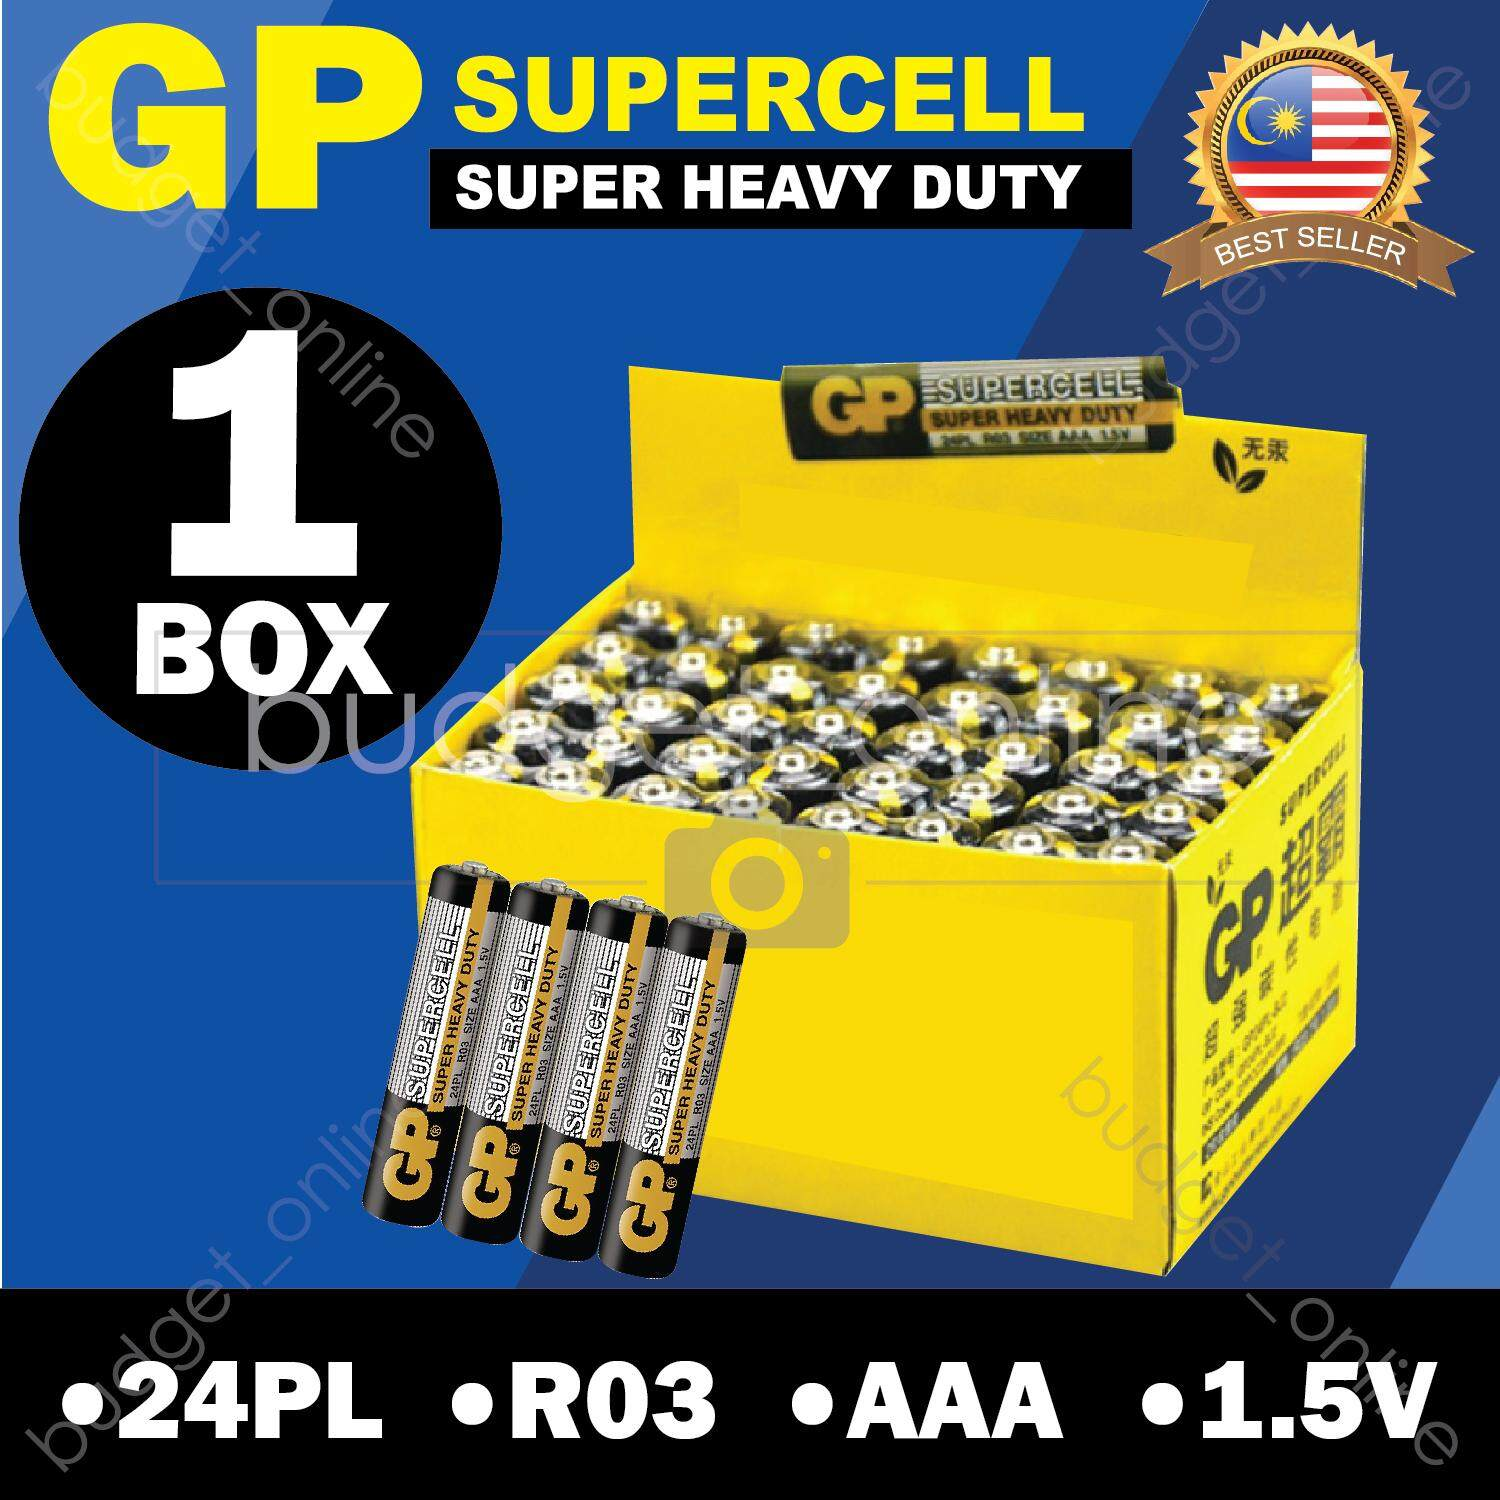 GP SUPERCELL Super Heavy Duty AAA 1.5V Battery Batteries 1 BOX ONLY